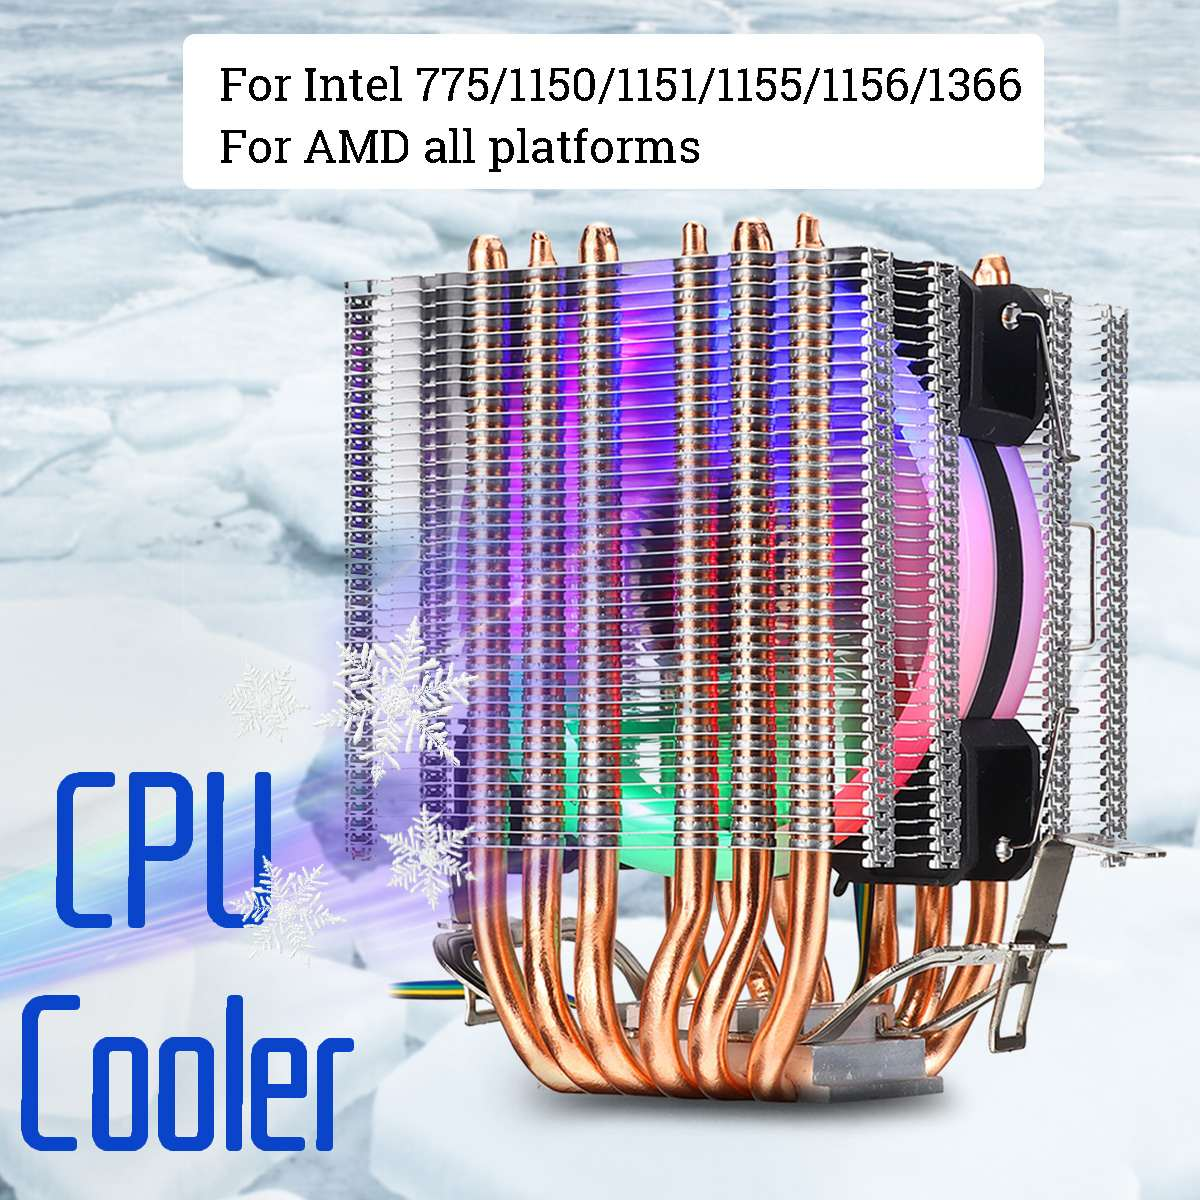 6 Heat Pipe <font><b>CPU</b></font> <font><b>Cooler</b></font> <font><b>RGB</b></font> LED Fan 4pin <font><b>CPU</b></font> Fan Cooling <font><b>Cooler</b></font> Heatsink Quiet for Intel 775/1150/1151/1155/1156/1366 for AMD All image